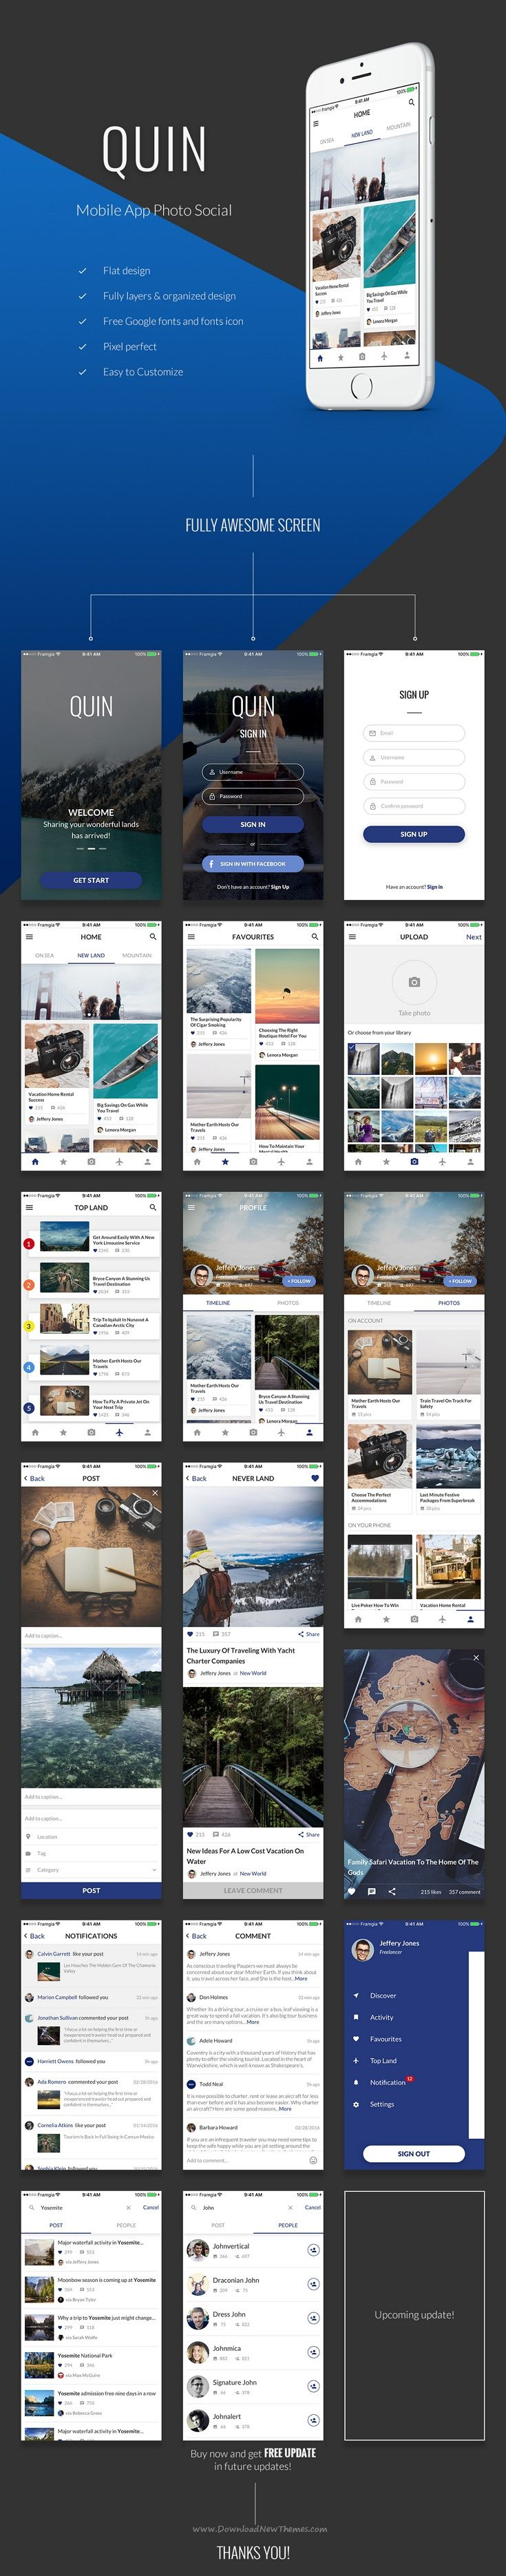 Quin is mobile #app to share your best photos to social friends. #ui #sketchtemplate Download Now➝ http://themeforest.net/item/quin-mobile-app-photo-social/15787297?ref=Datasata